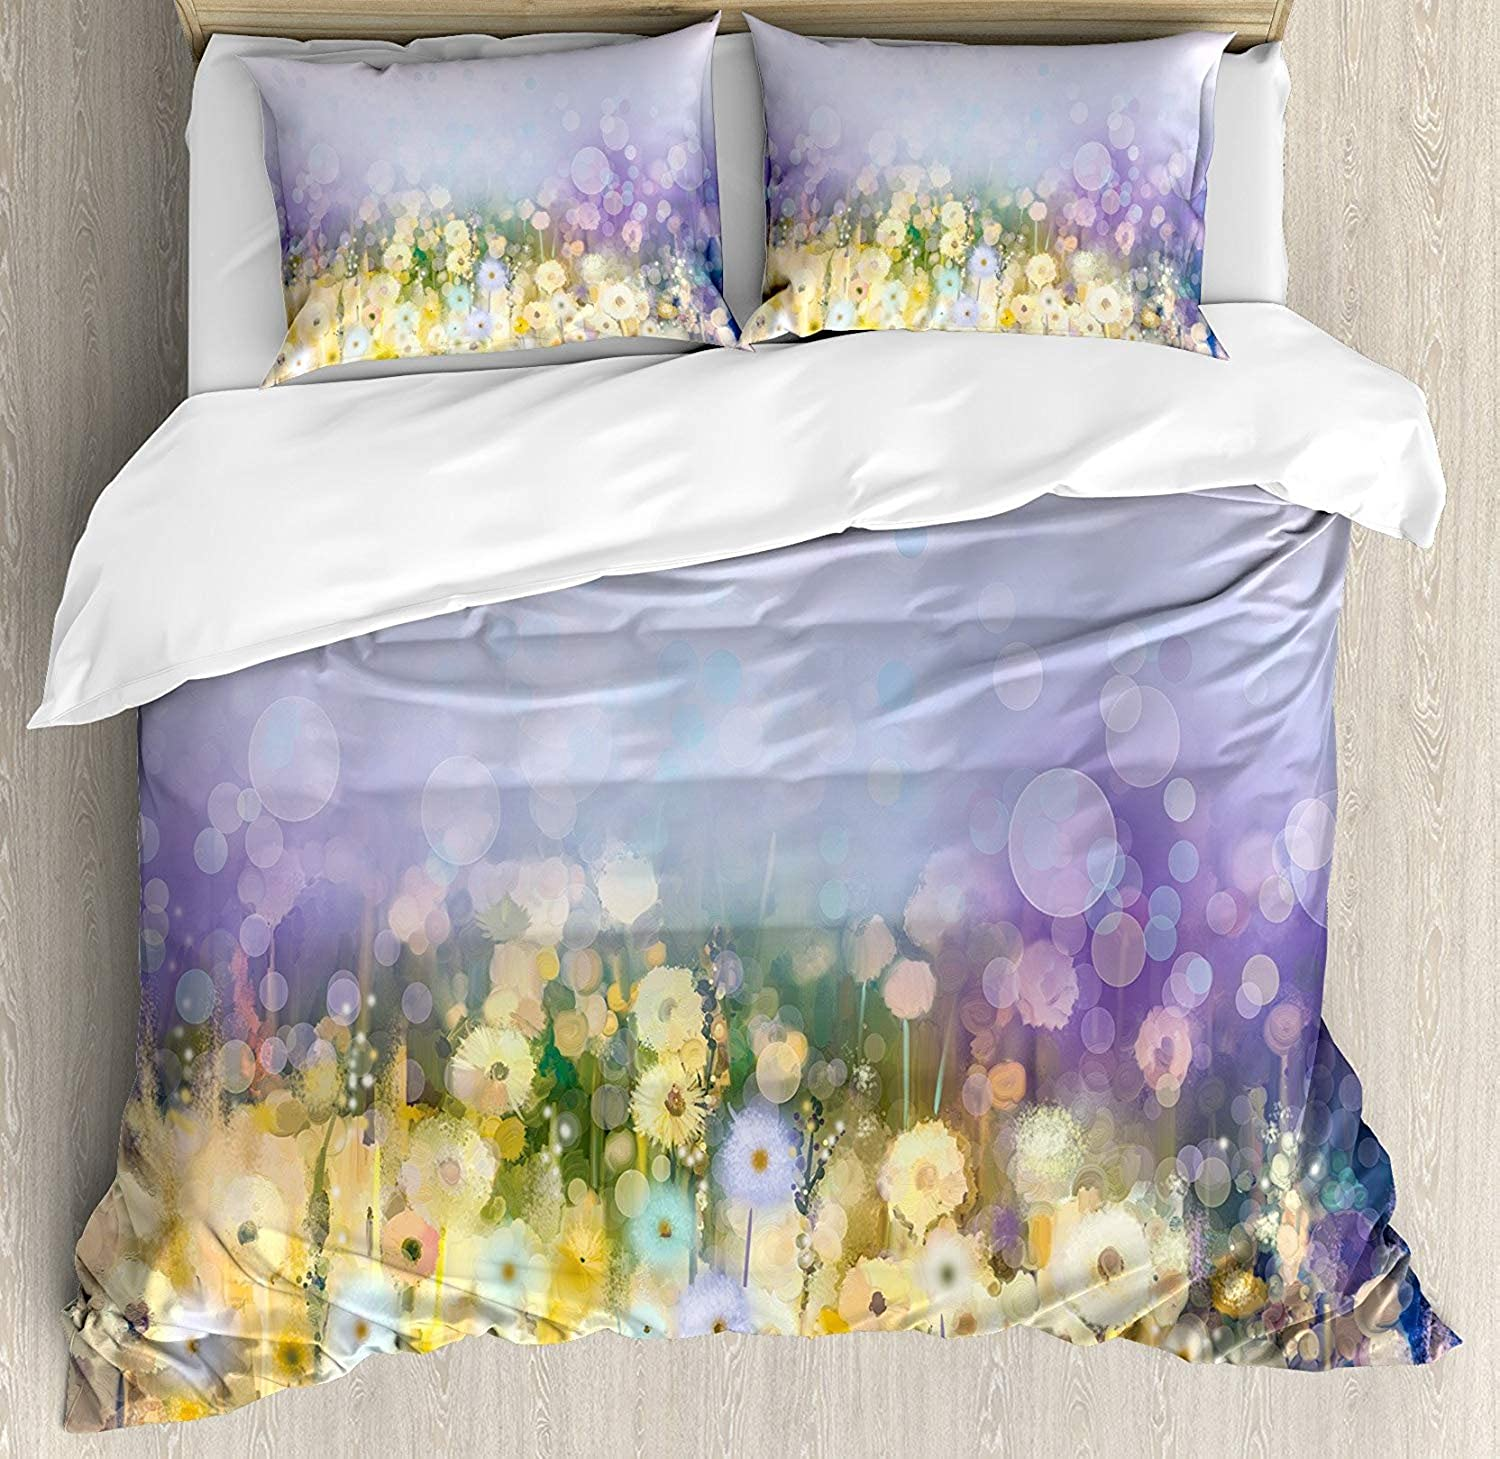 OxOHome Flower Bedding SetsChamomile Dandelion Field Meadow Landscape in Contrasting colors Idyllic View Duvet Cover Sets Yellow Purple Twin Bedding Comforter Cover Sets Soft Bedding Collections